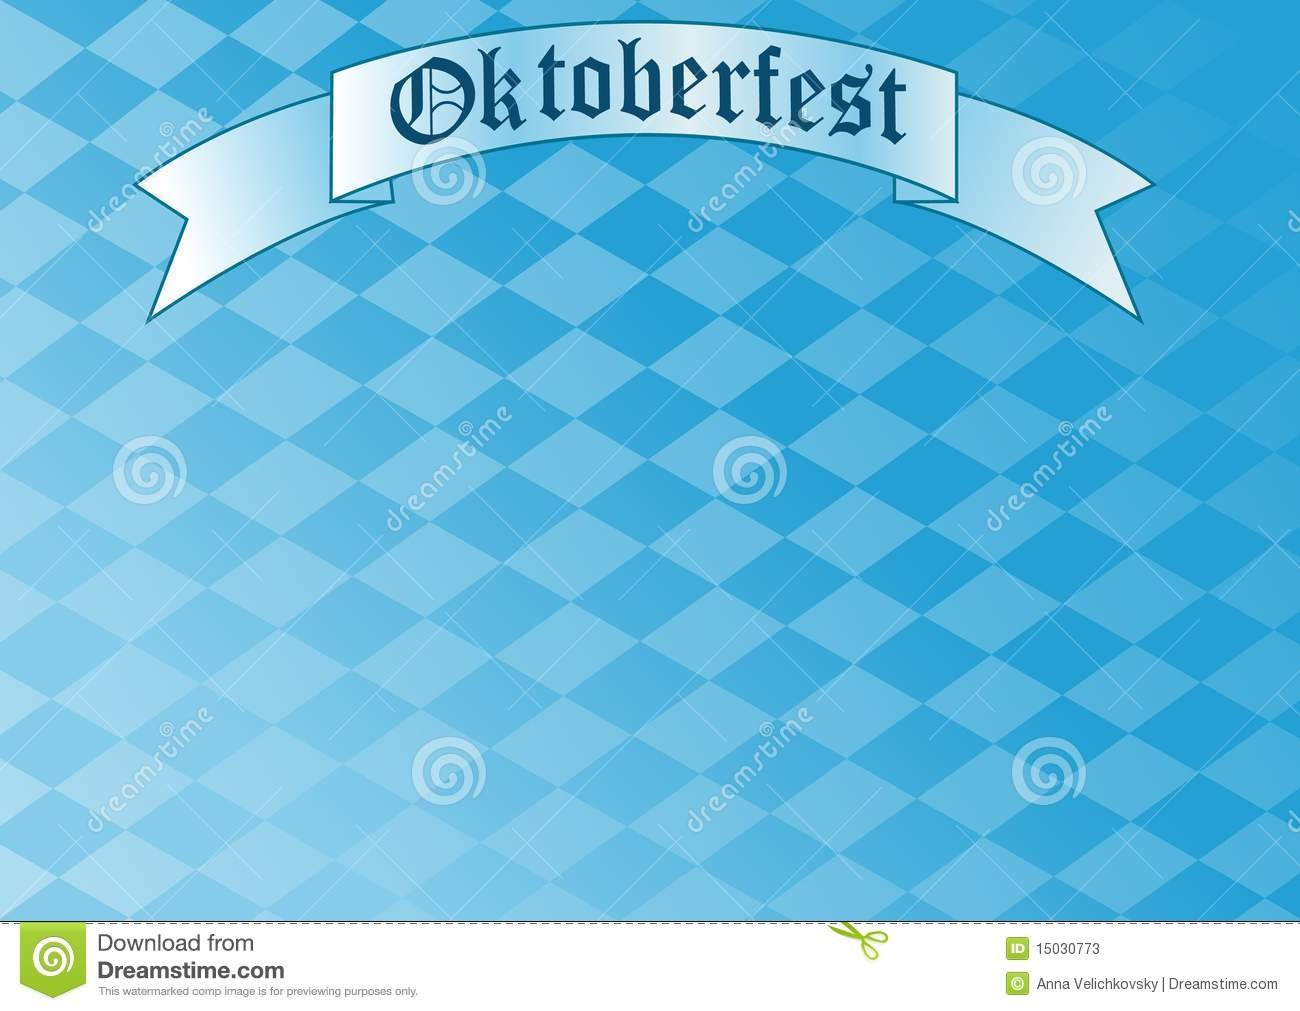 oktoberfest celebration editorial stock photo - image: 15030773, Einladung